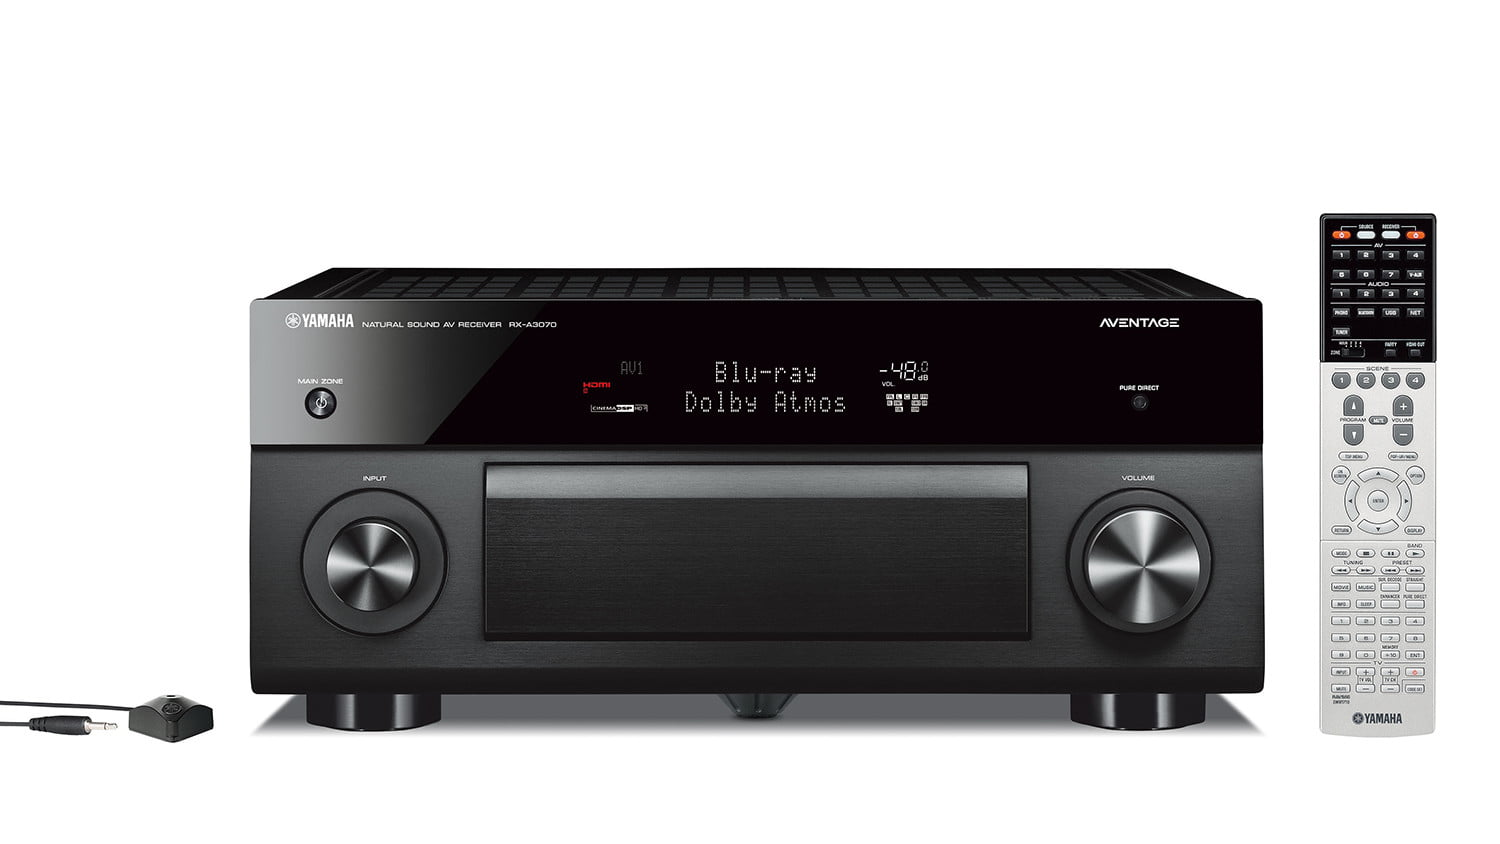 yamaha aventage rx a 70 series receivers 2017 pricing availability rxa3070blfructkrls f